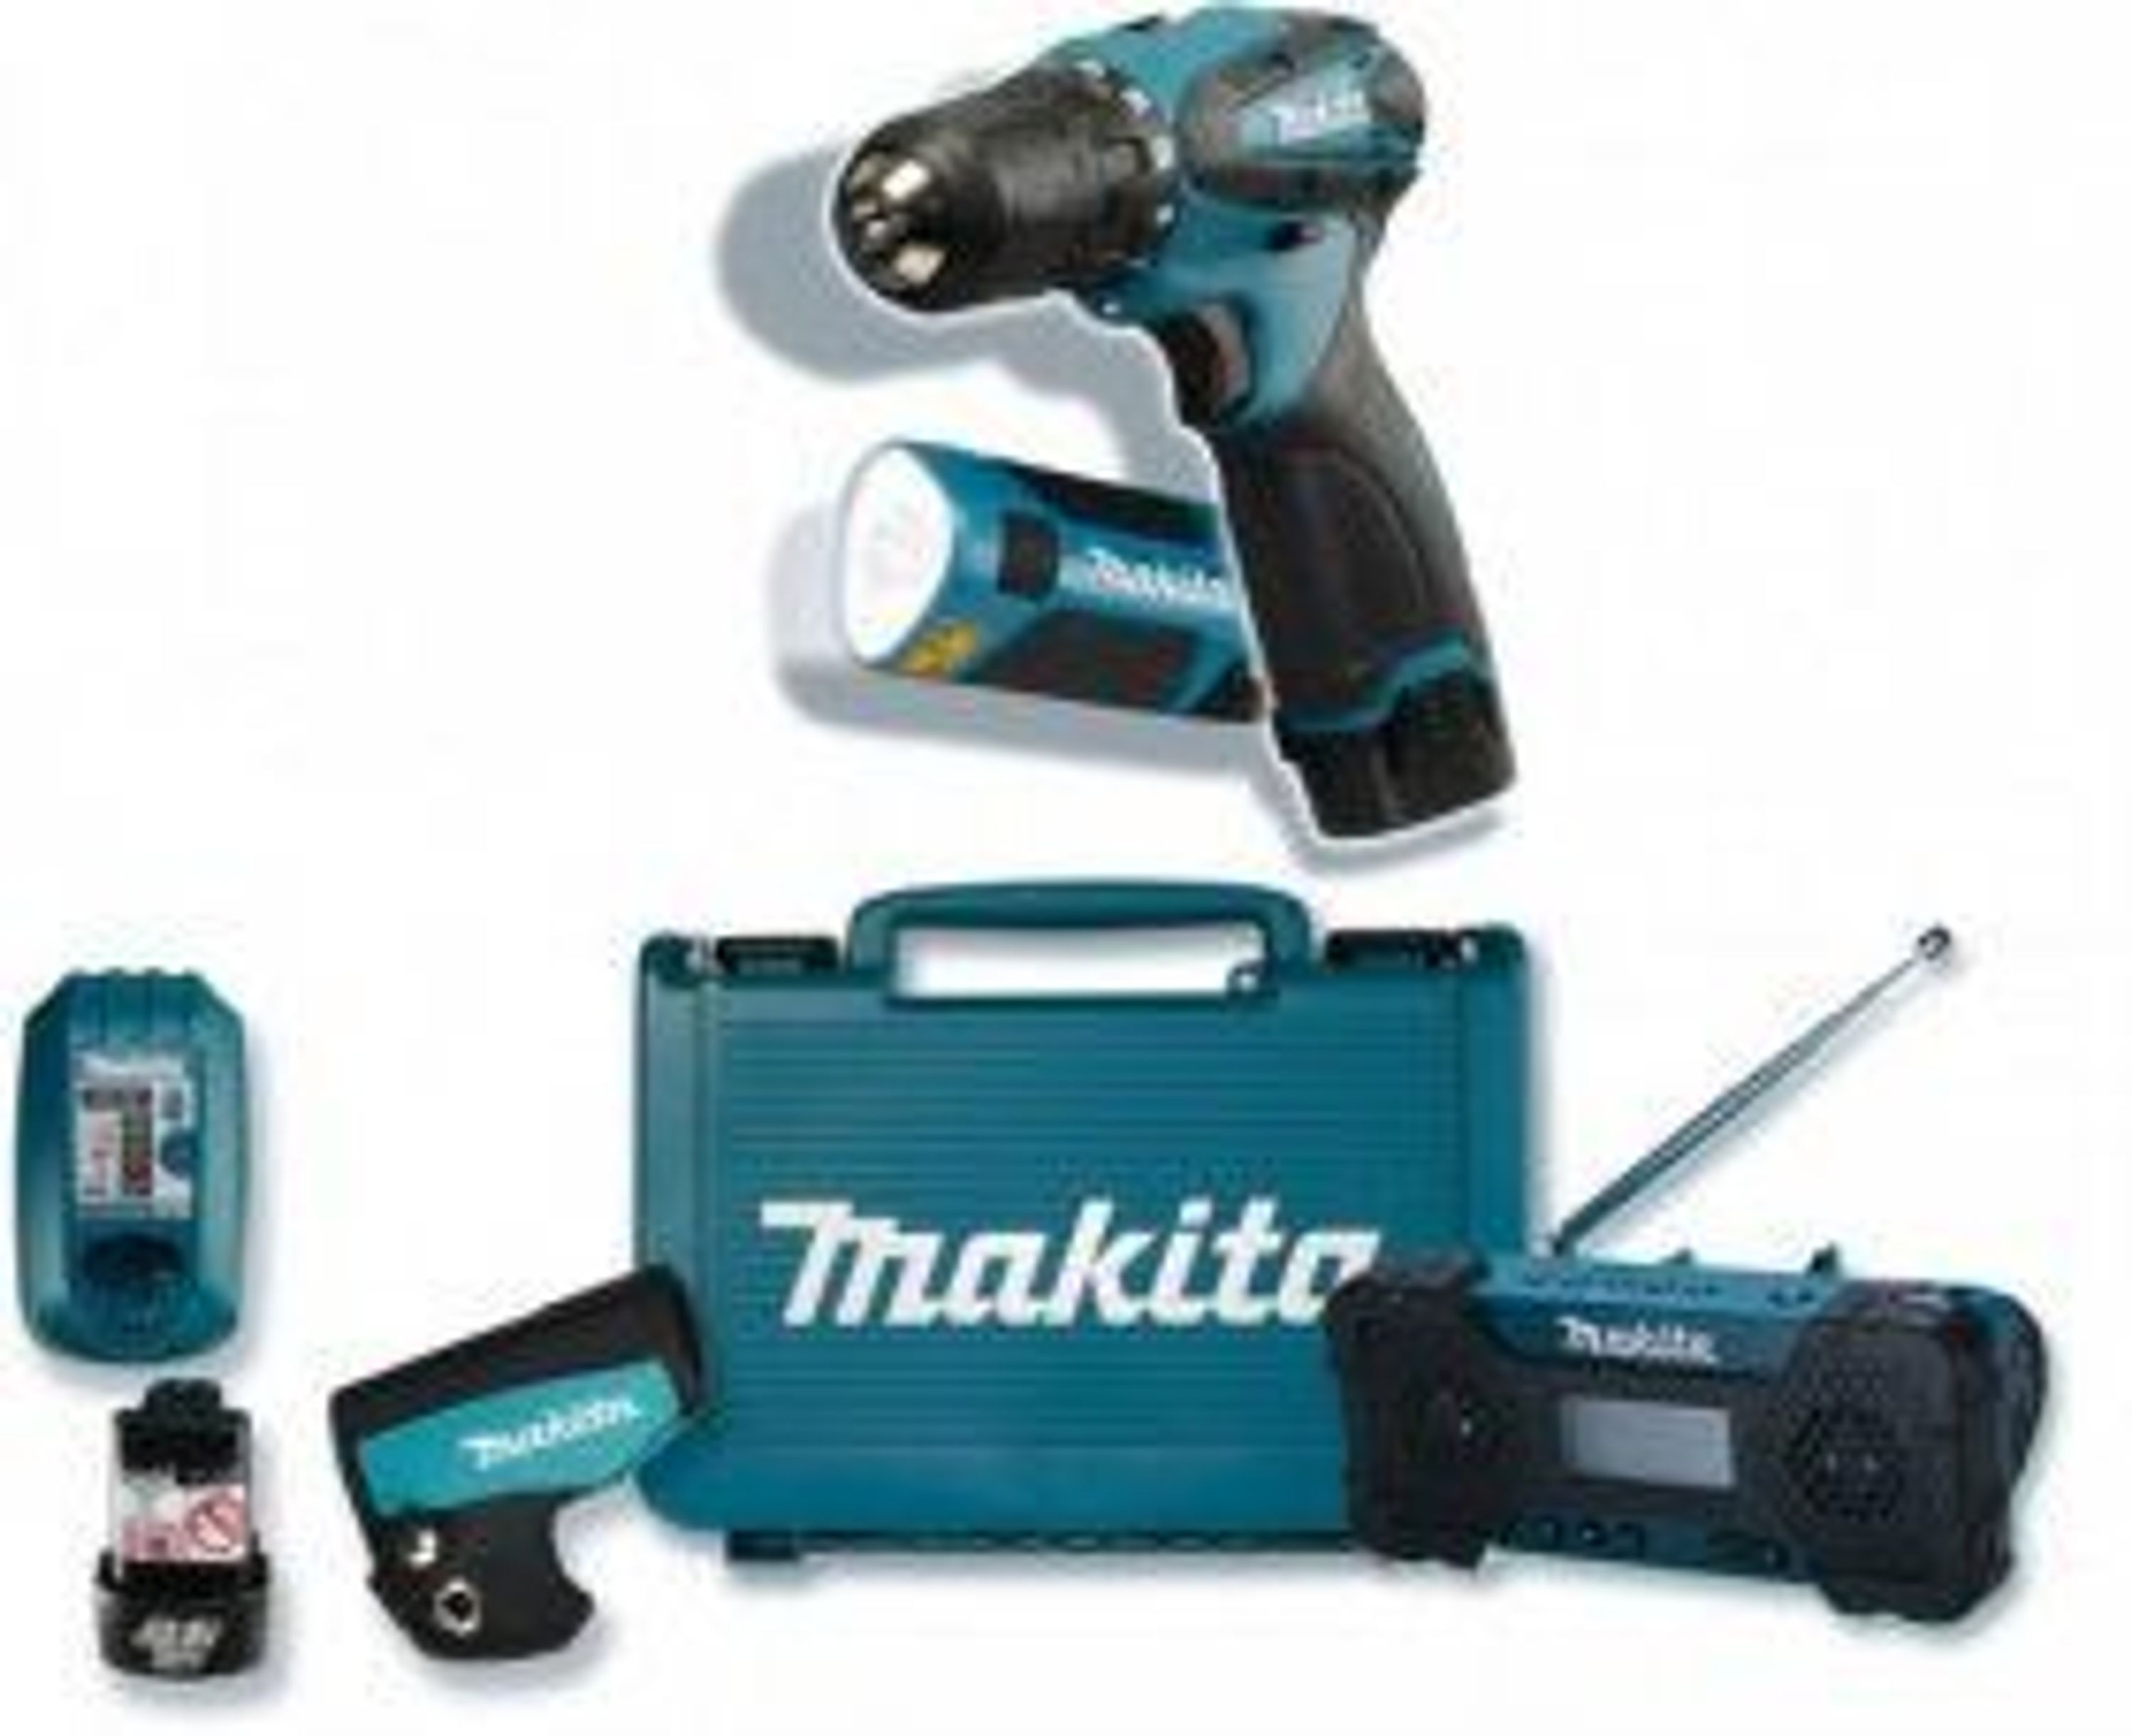 makita aktionsset akkuschrauber lampe radio kaufen bei. Black Bedroom Furniture Sets. Home Design Ideas